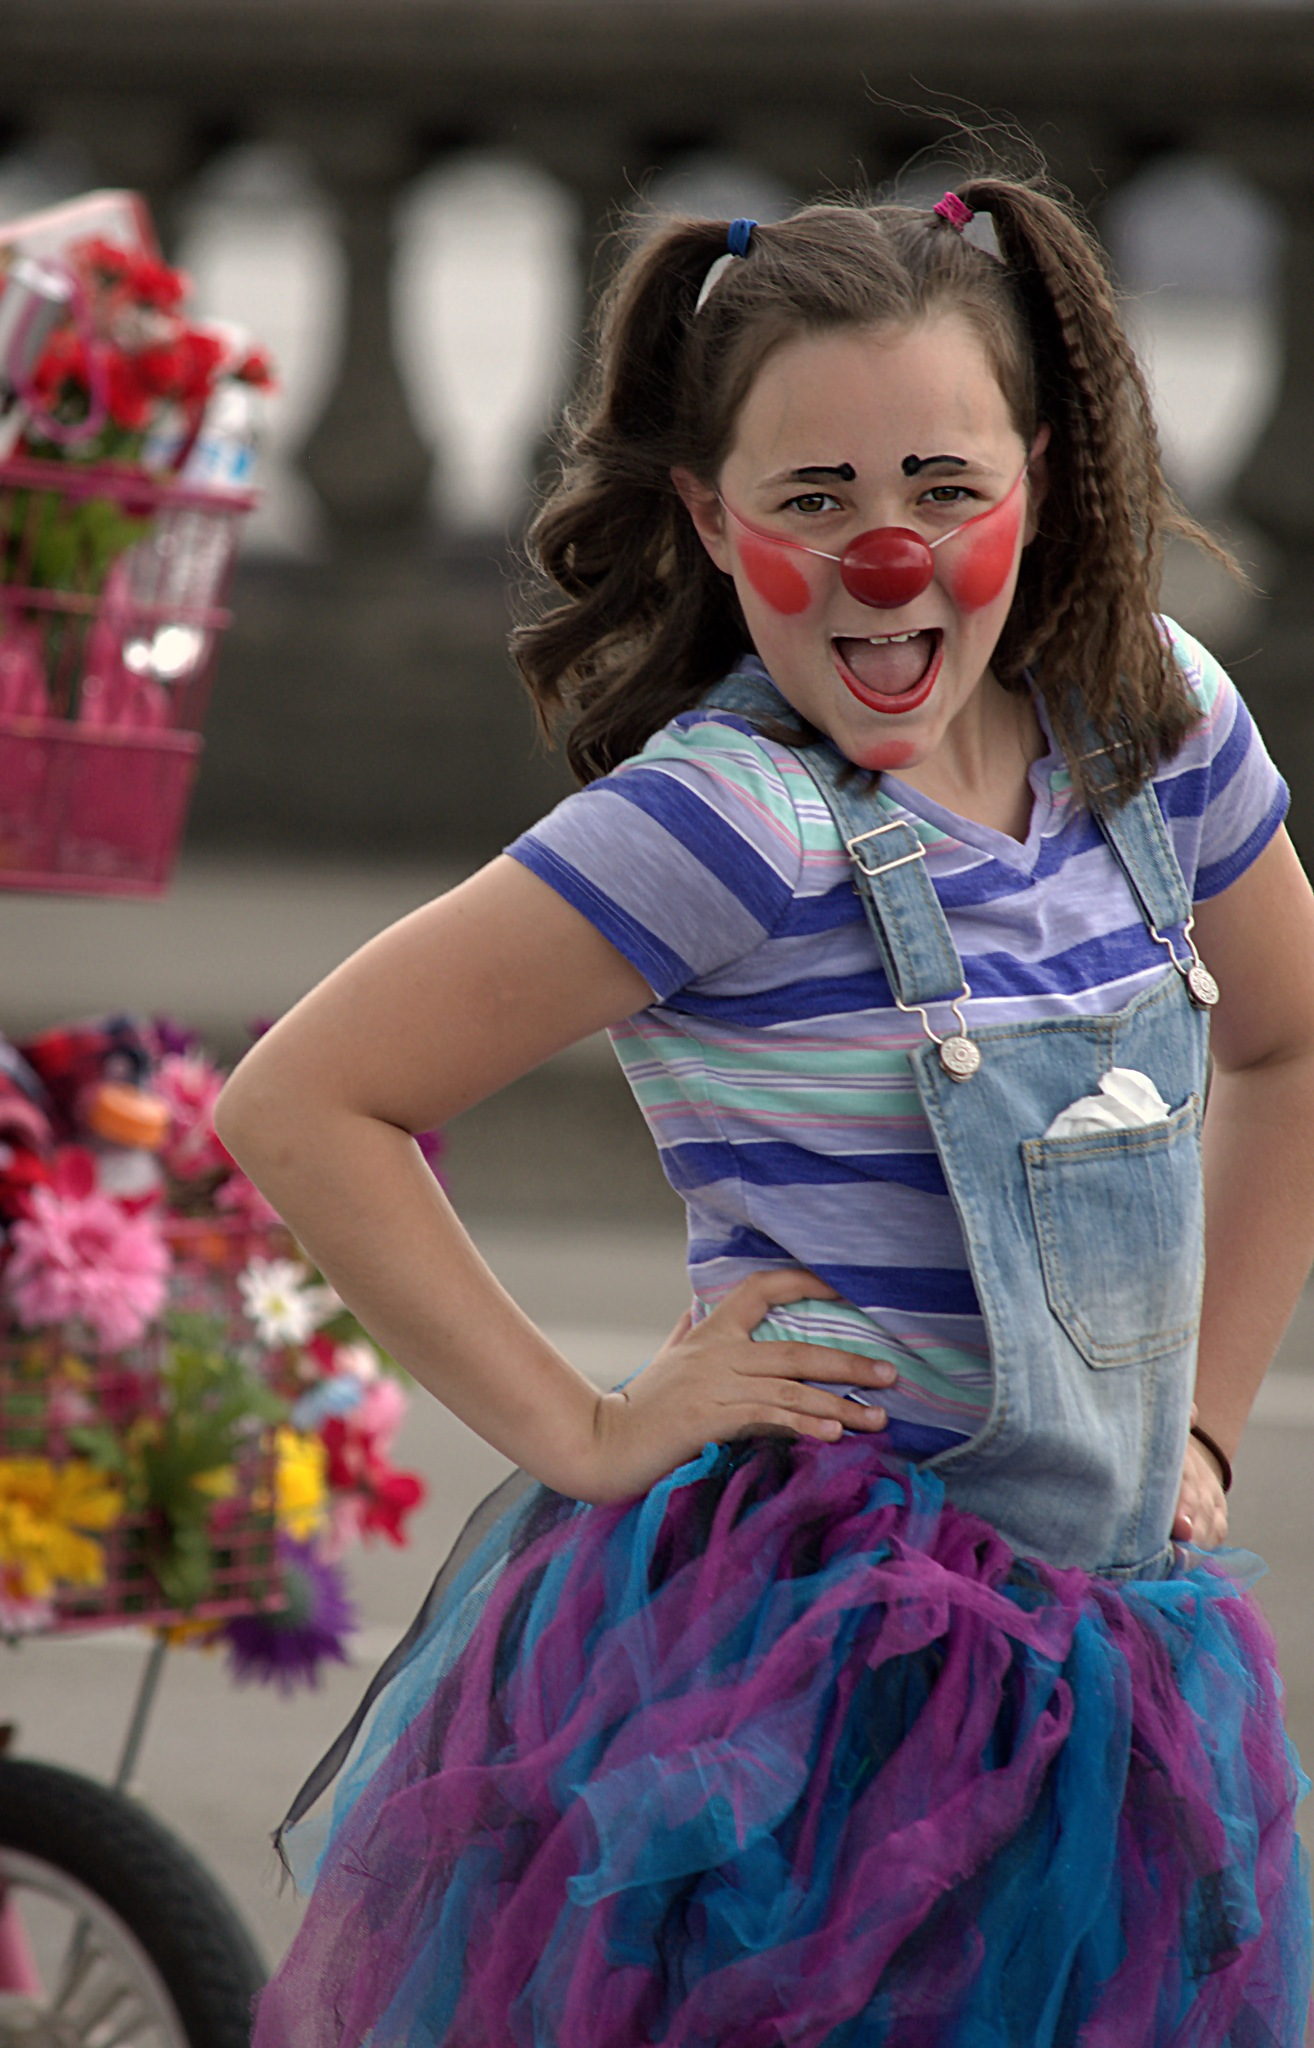 Clowning Around by pscottwong